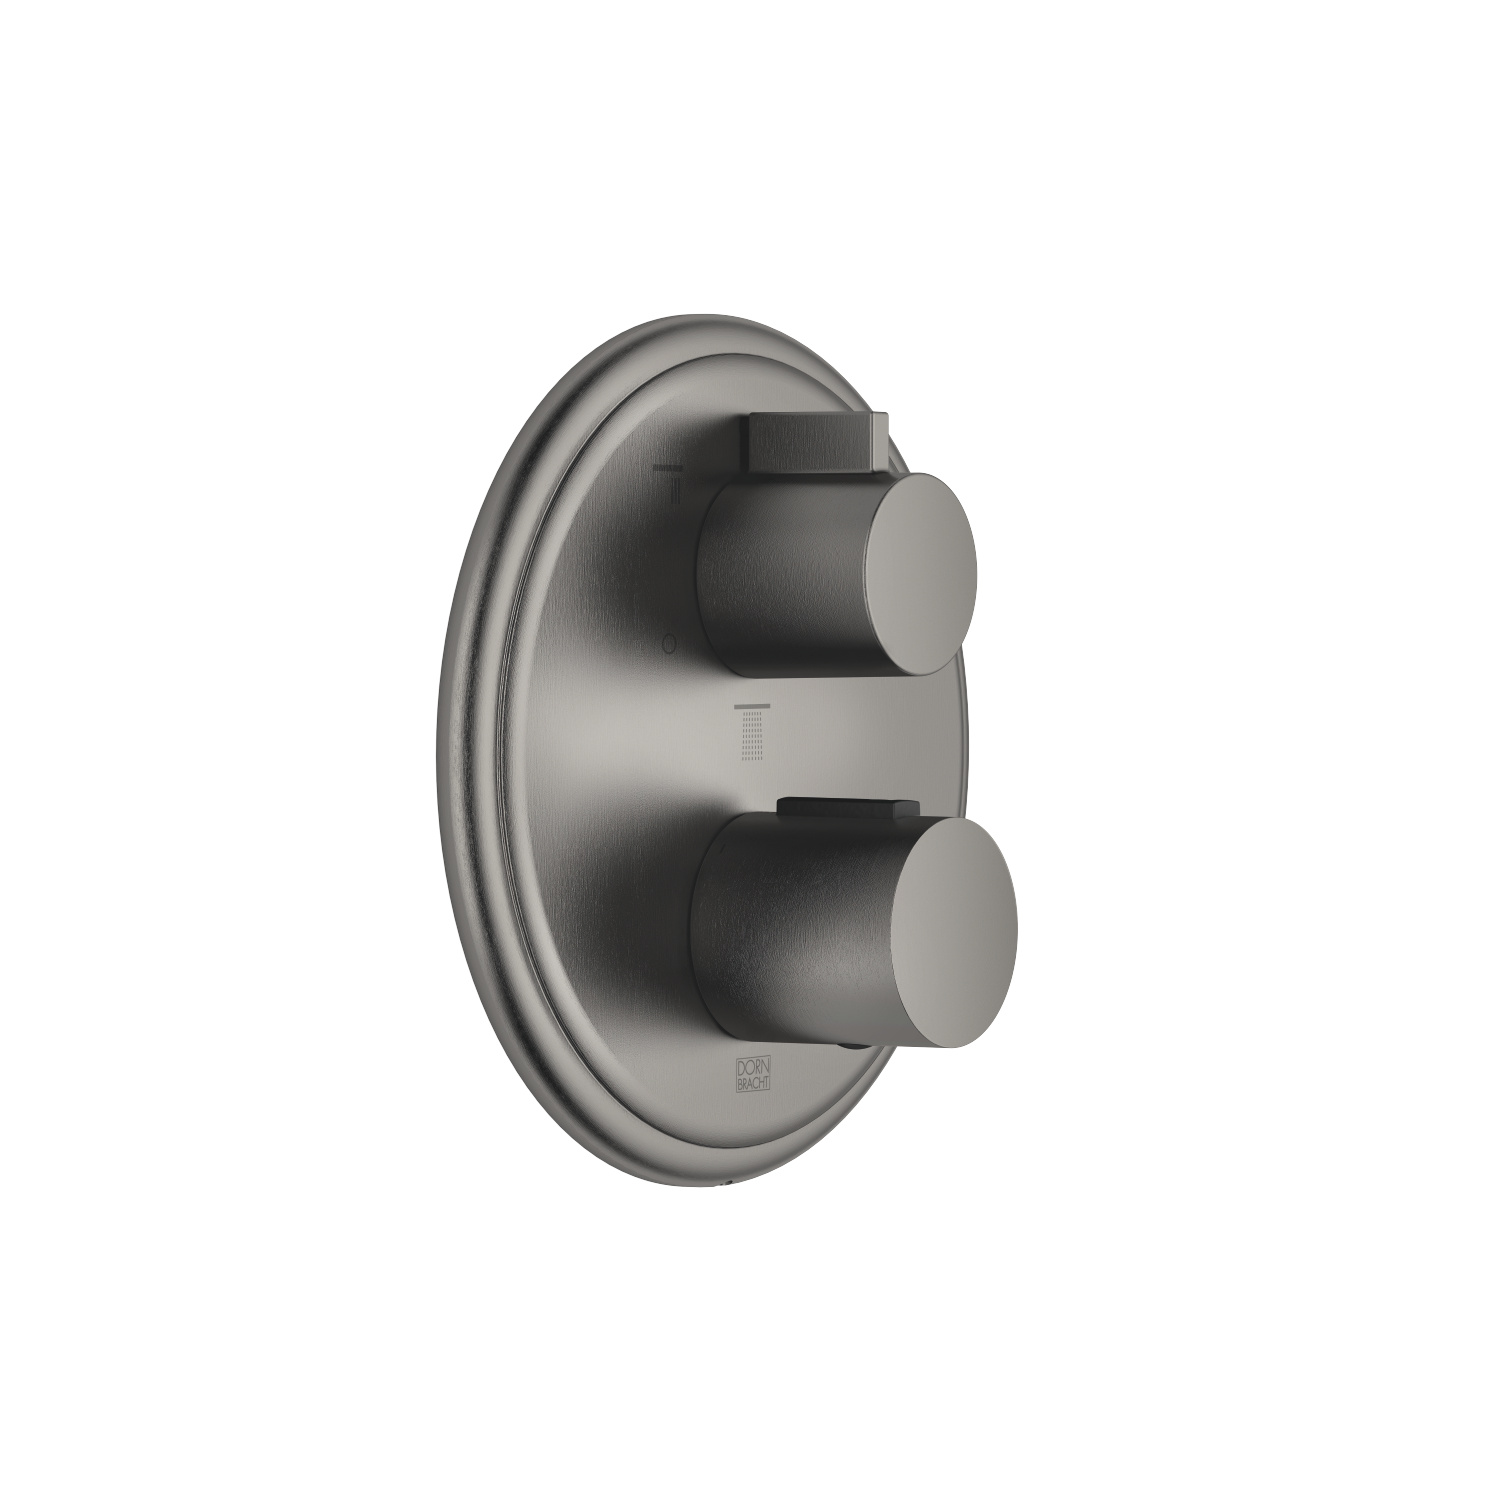 Concealed thermostat with three function volume control - Dark Platinum matt